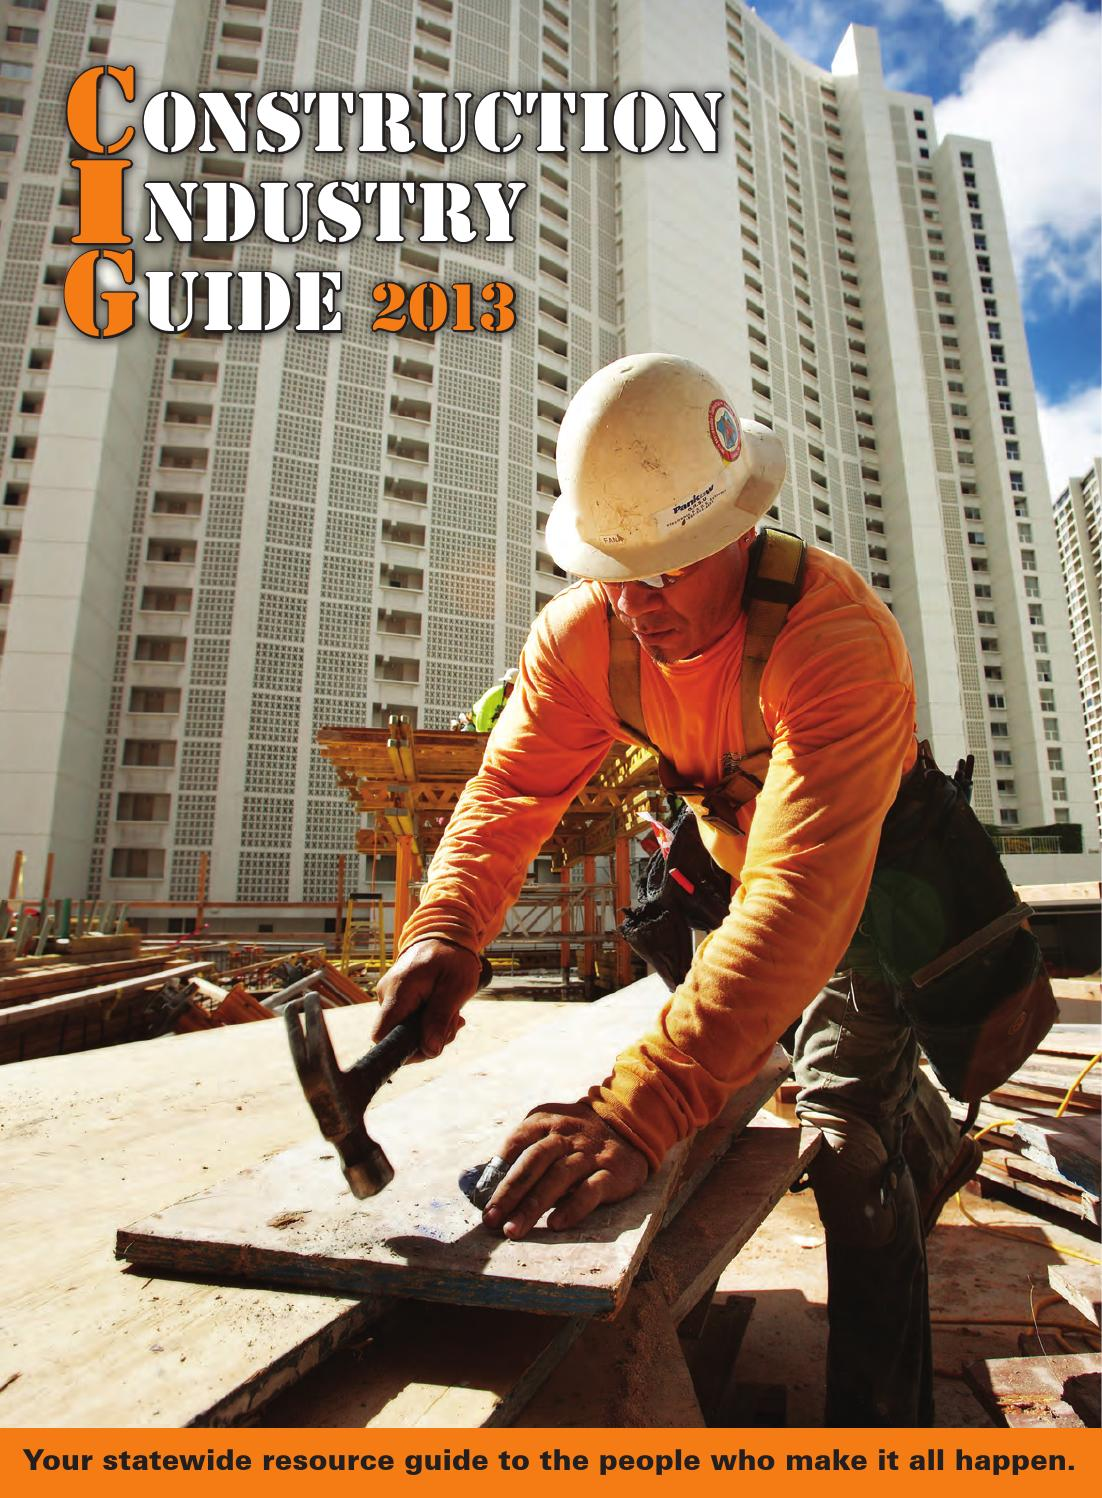 Construction Industry Guide 2013 By Ursula Silva Issuu An374 1 Watt L 8 8211 16 Volts Audio Amplifier